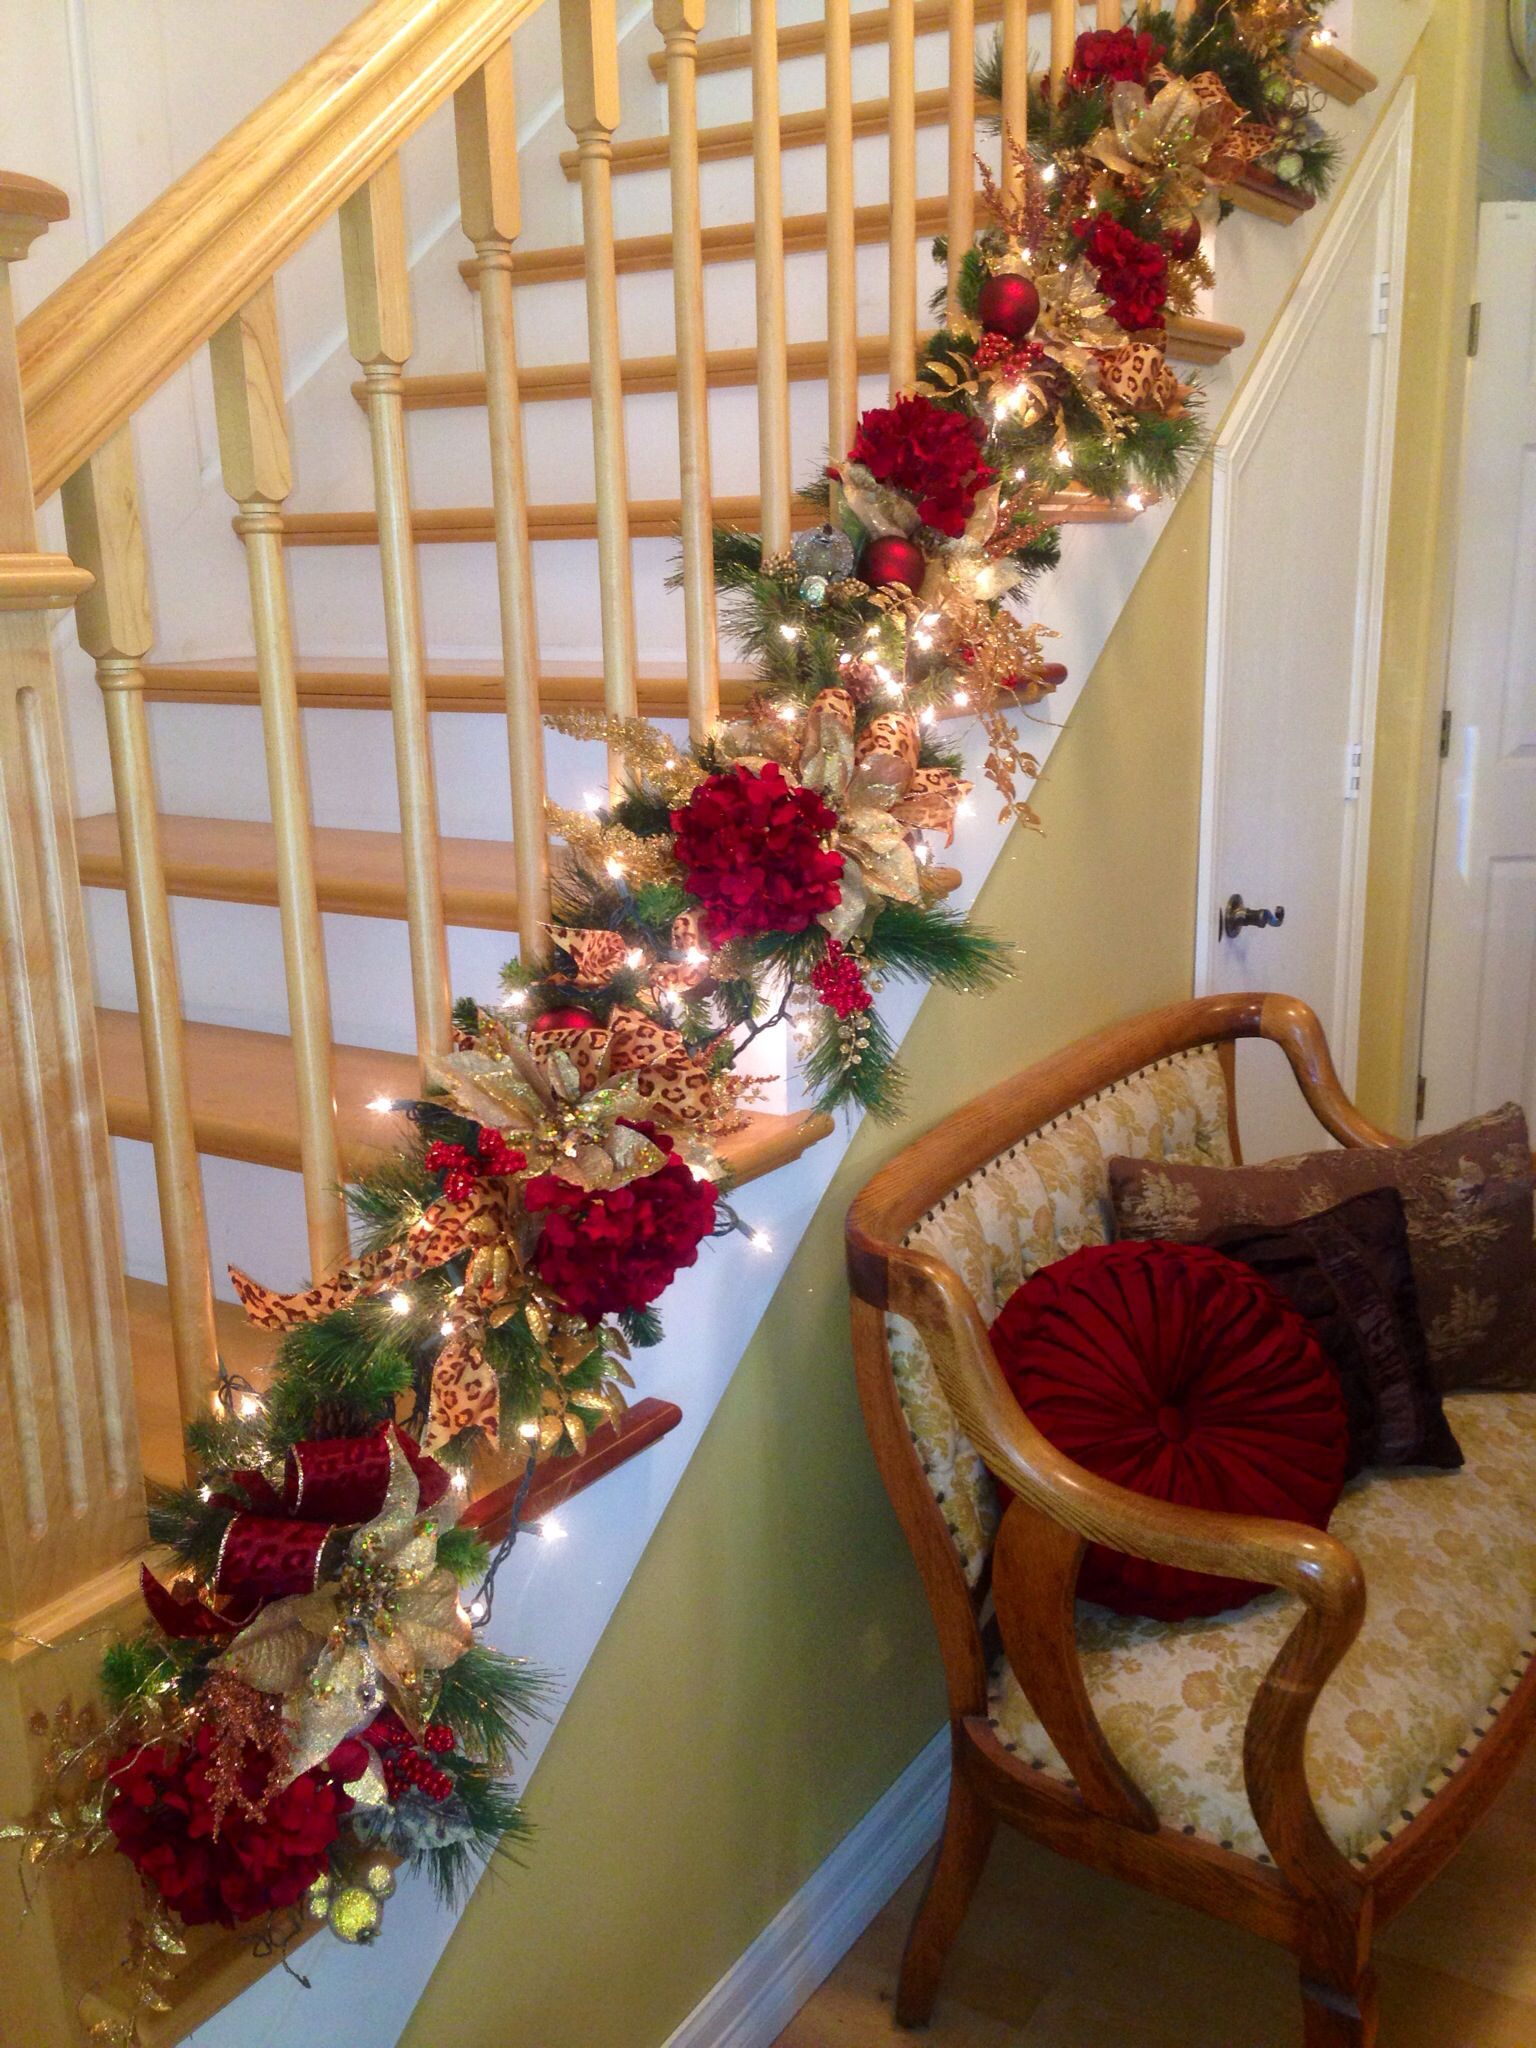 decorate the staircase for christmas 45 beautiful ideas decoration love